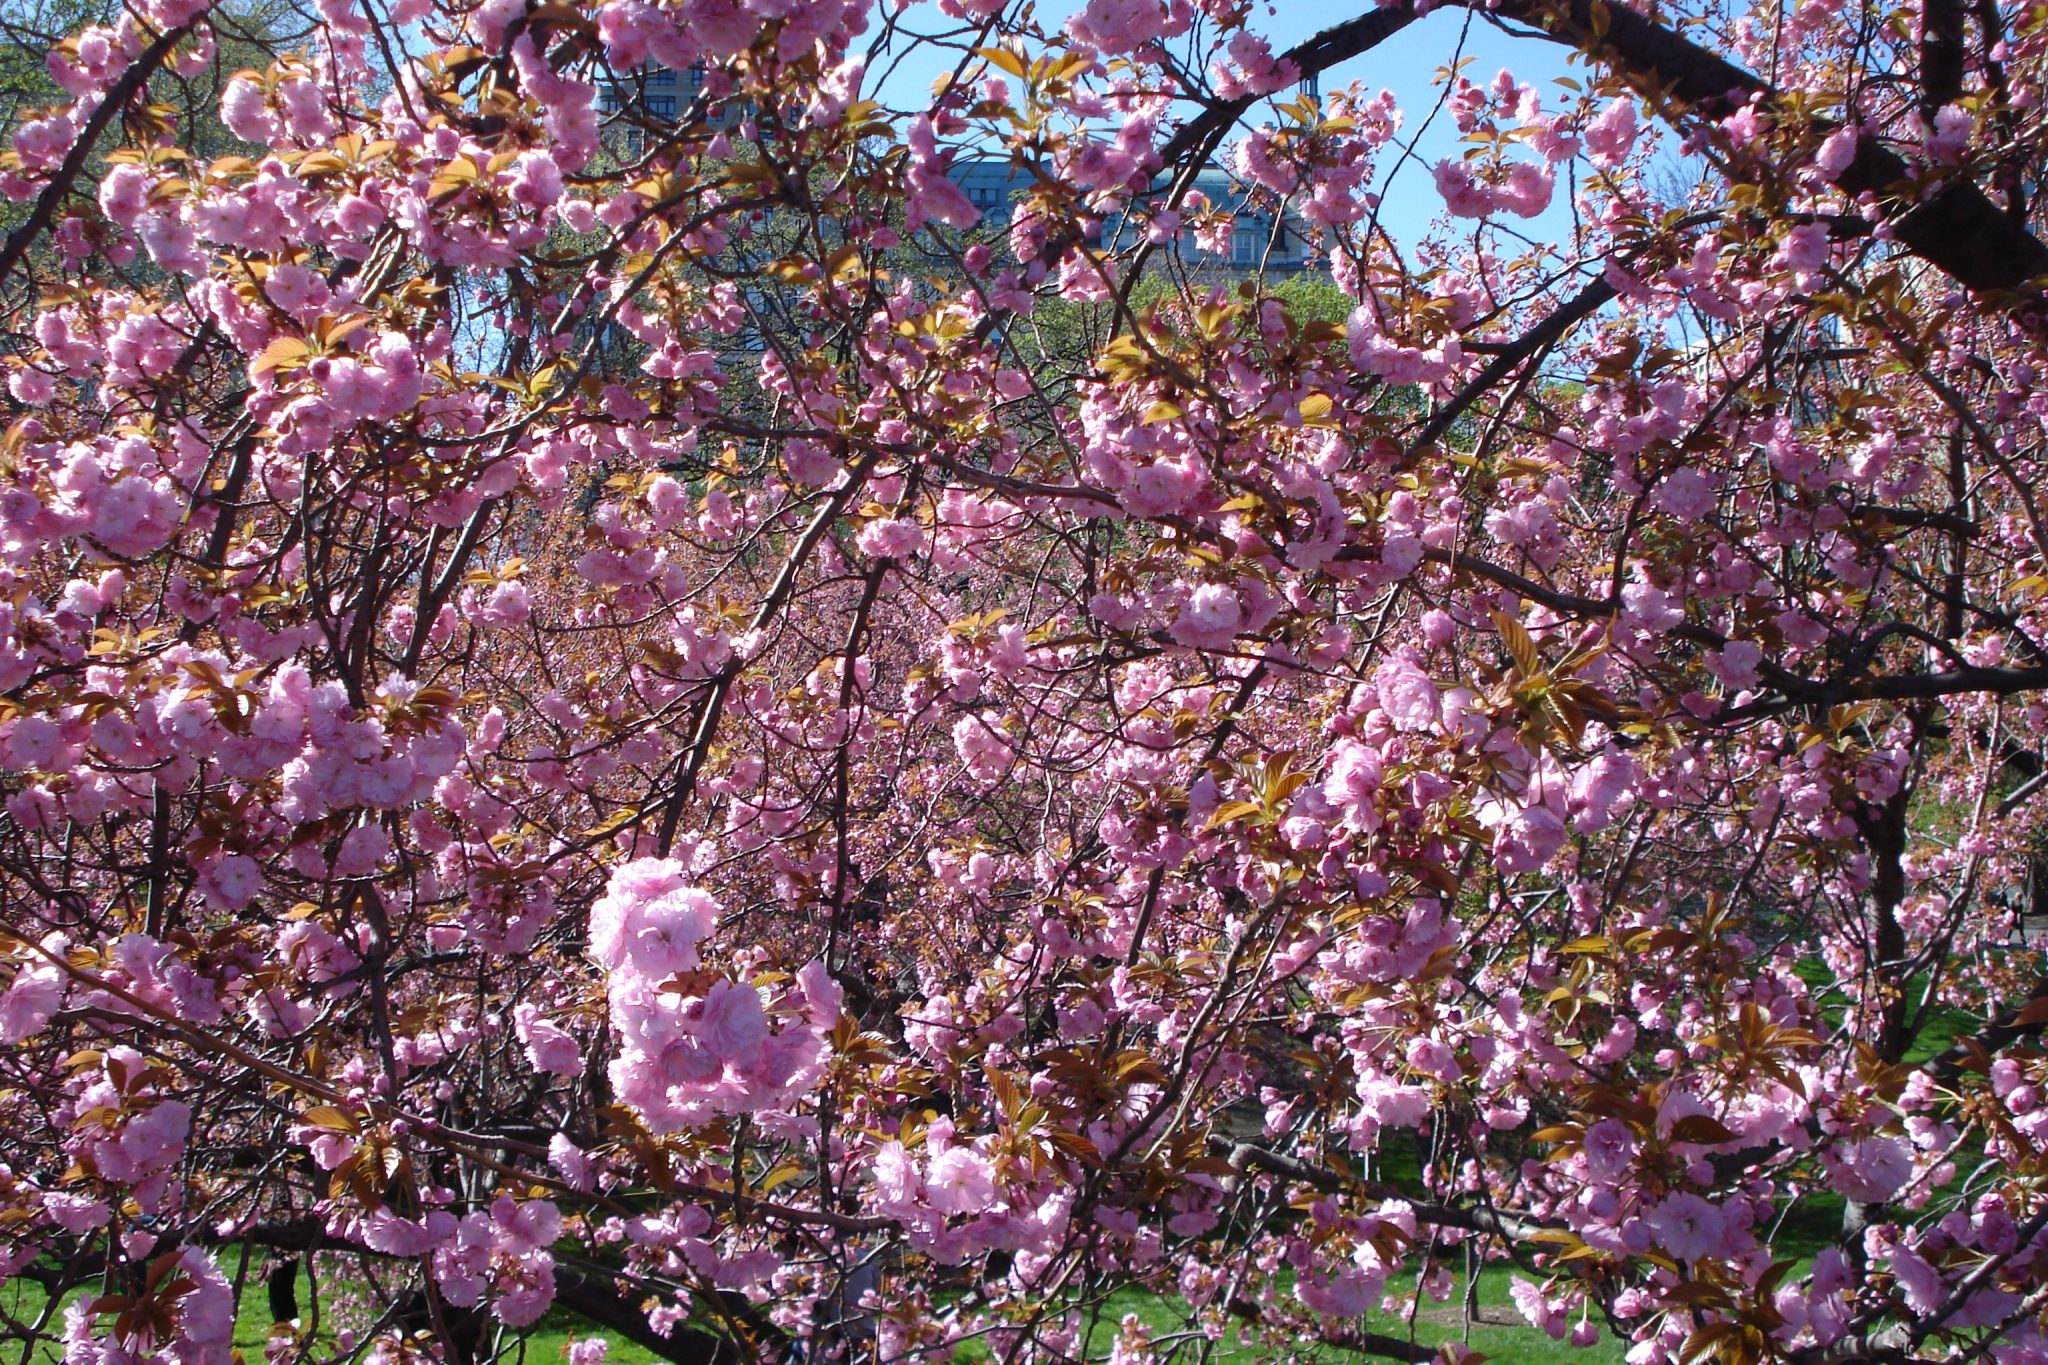 Pink blossoms on trees in Central Park April 2010